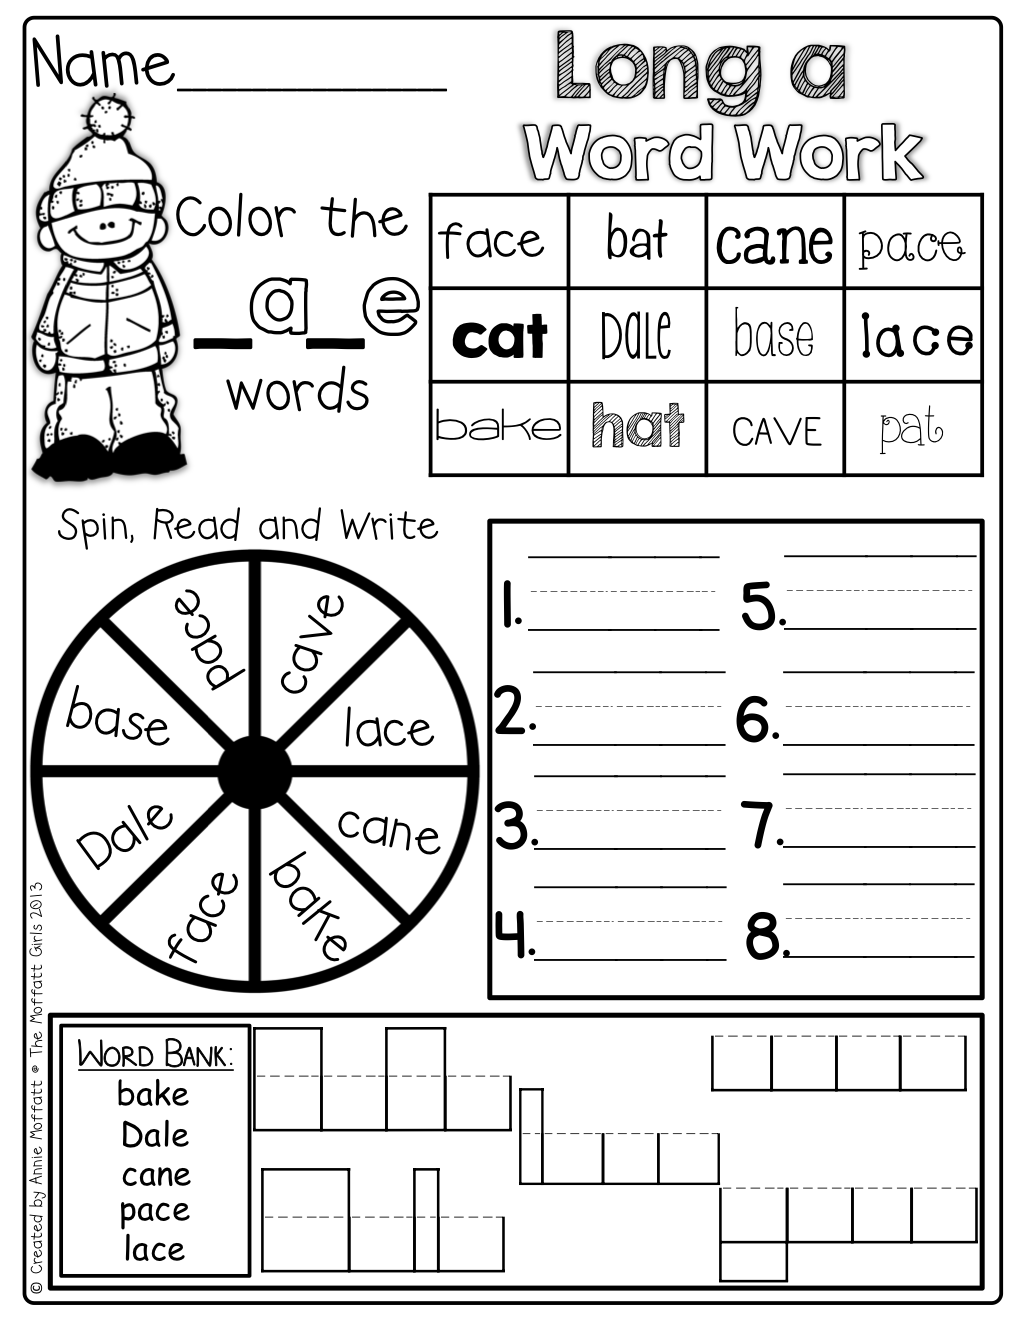 Long e coloring pages - Cvce Word Family Word Work